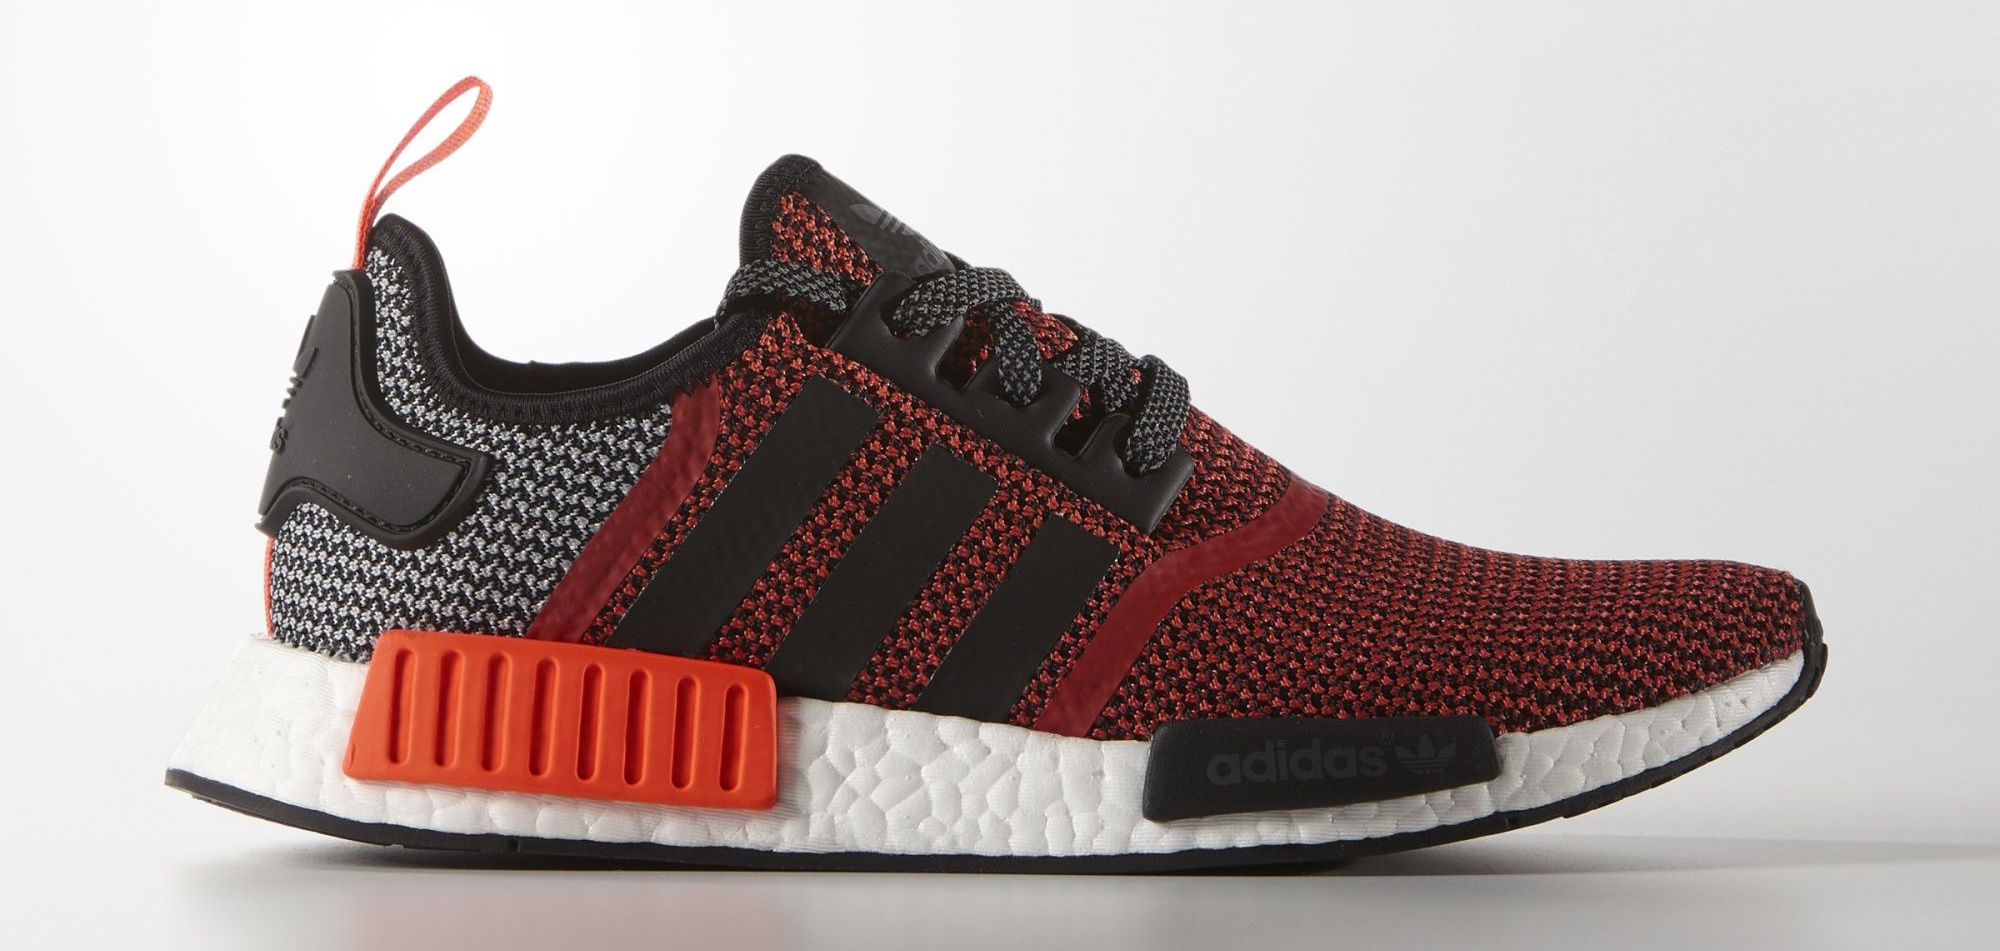 info for 23ca5 58b26 Nmd R1 Boost Runner Primeknit